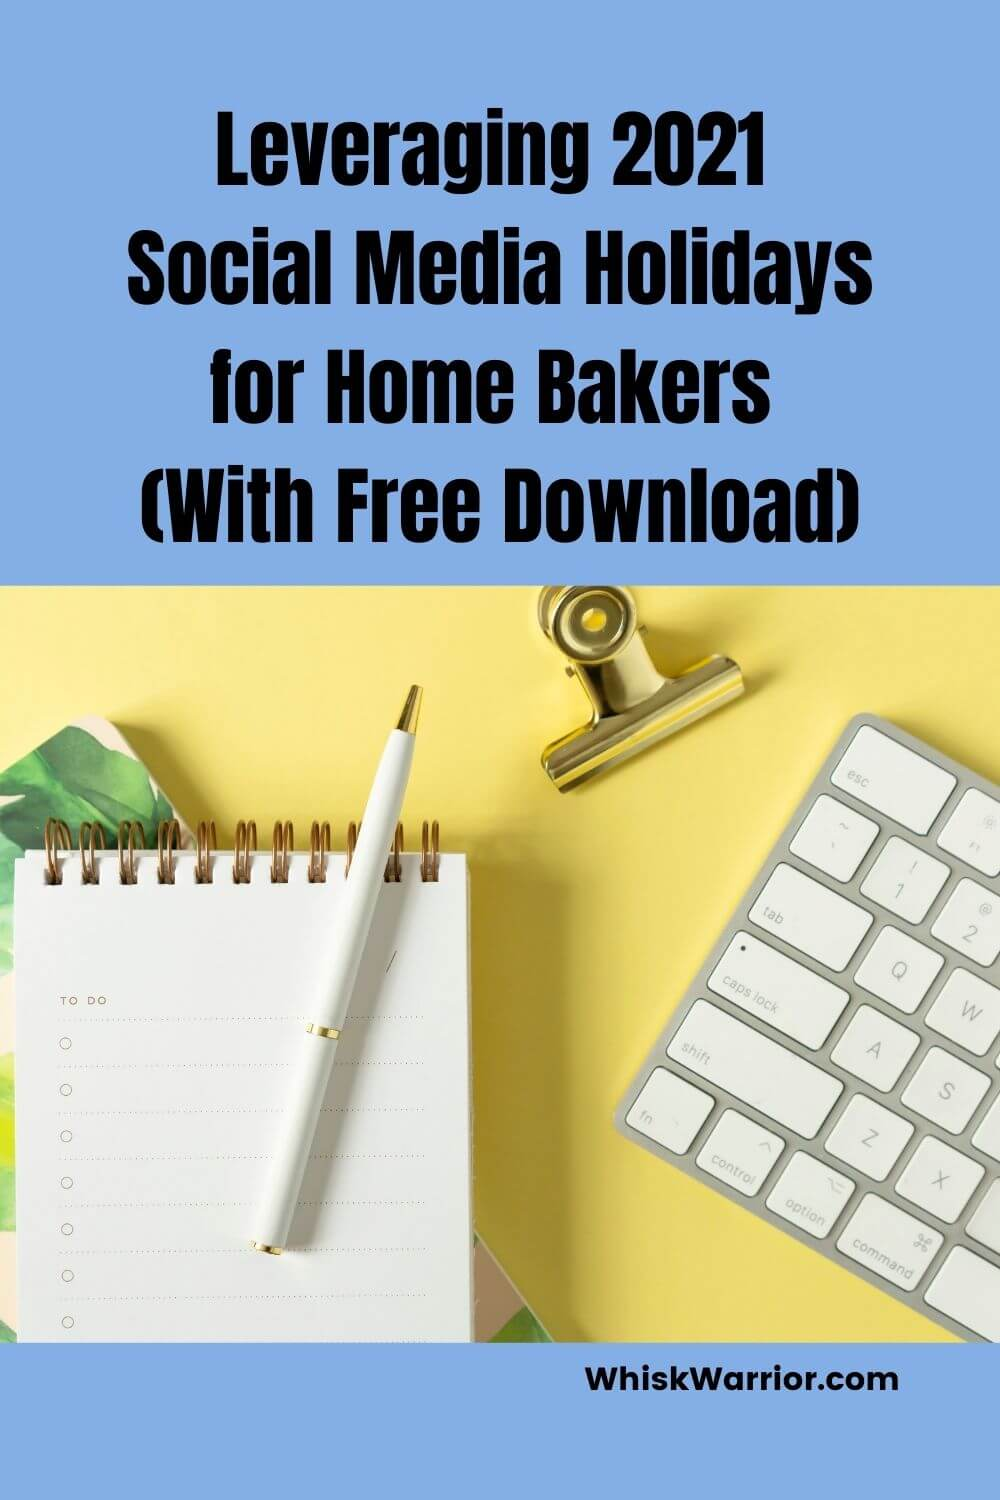 Home bakers, use social media holidays to round out your content strategy. Download the 2021 Calendar.